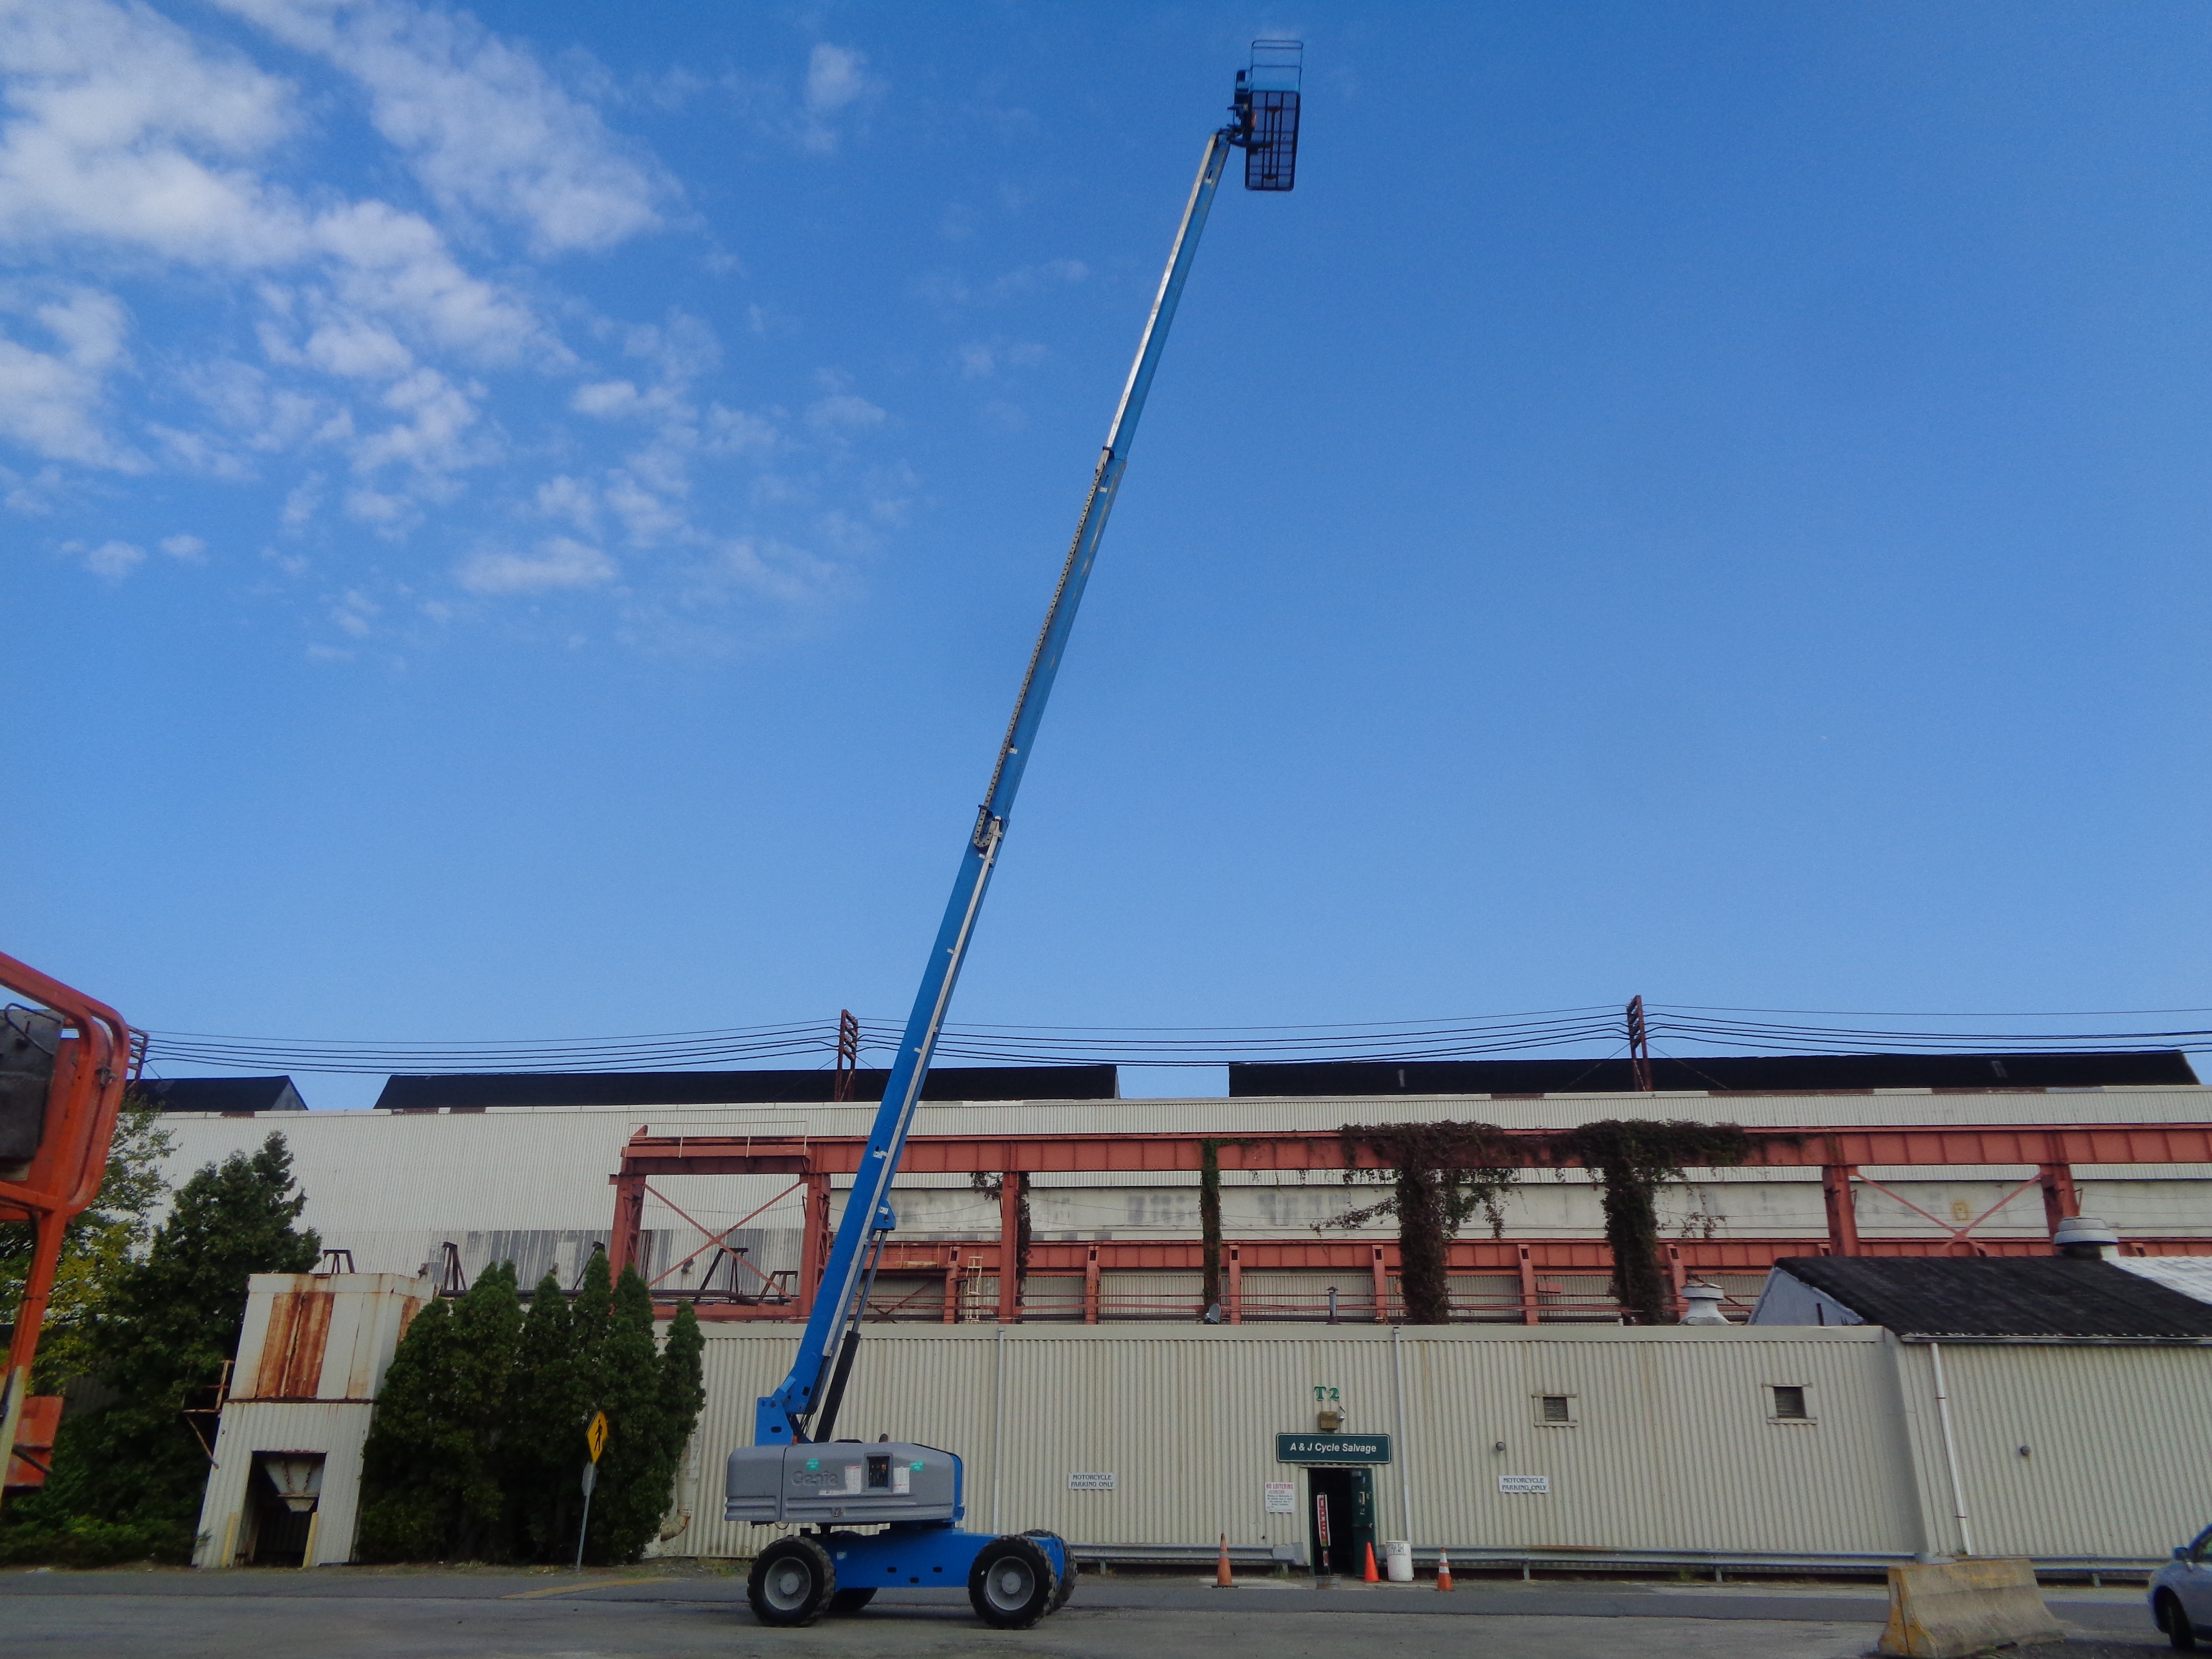 Genie S80 80ft Boom Lift - Image 20 of 22